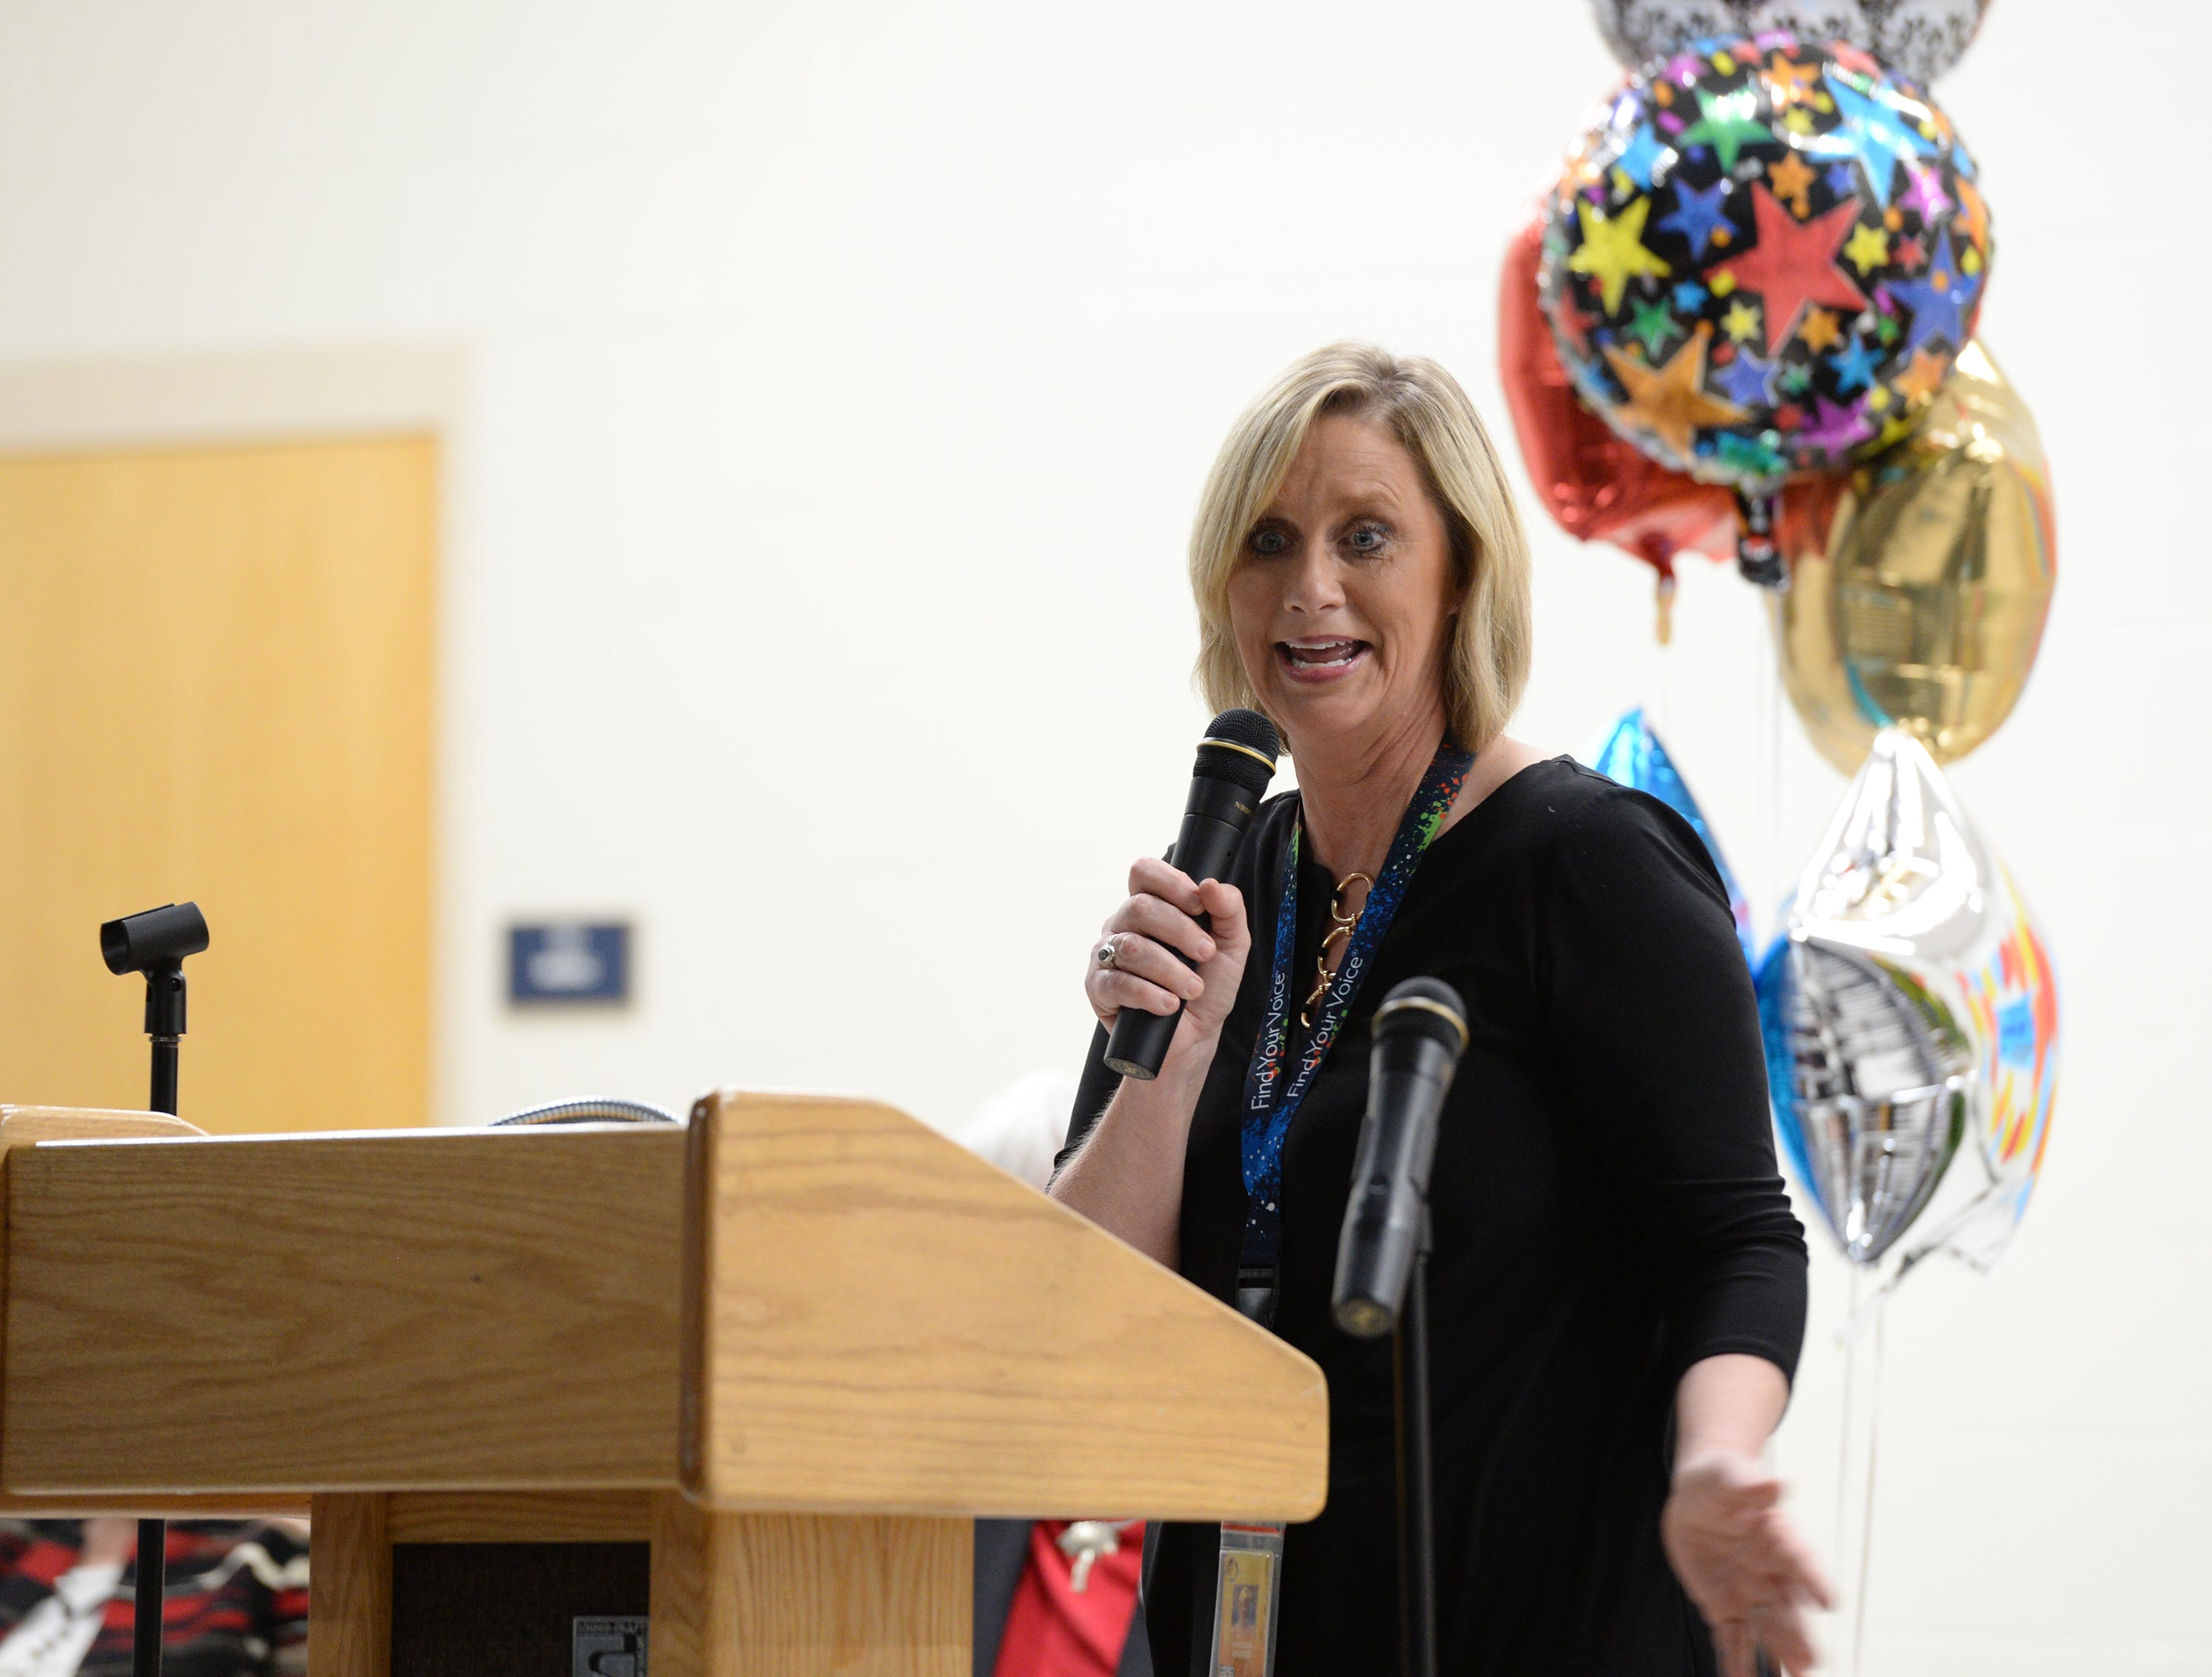 Principal Rhonda Rhodes talks to a crowd of students and faculty at Taylors Elementary School after she was named as the 2019 SC Elementary Principal of the Year Friday, Nov. 30, 2018.